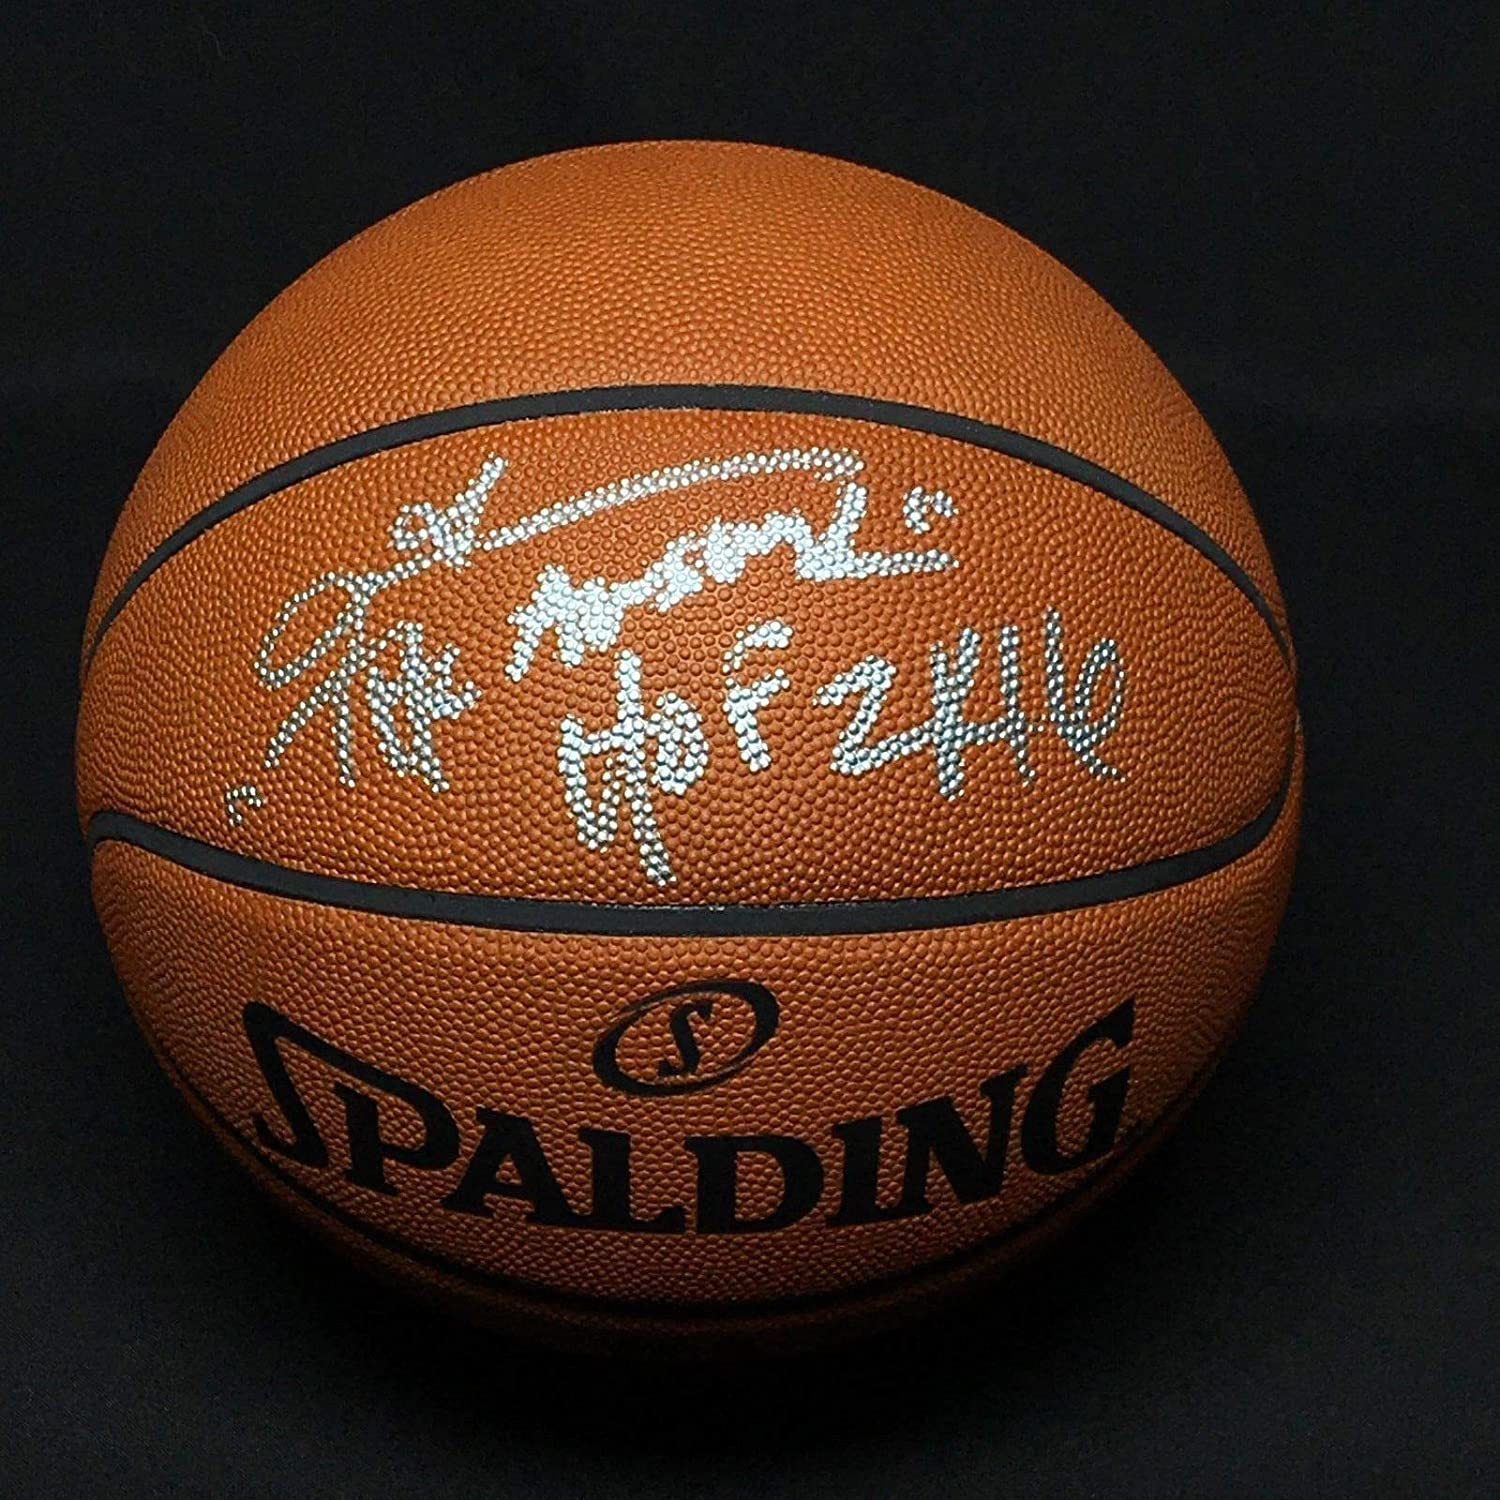 7c11fe98056 Allen Iverson Autographed Signed Authentic Nba Game Basketball The Answer/ Hof 2K16 Memorabilia PSA/DNA 464 at Amazon's Sports Collectibles Store